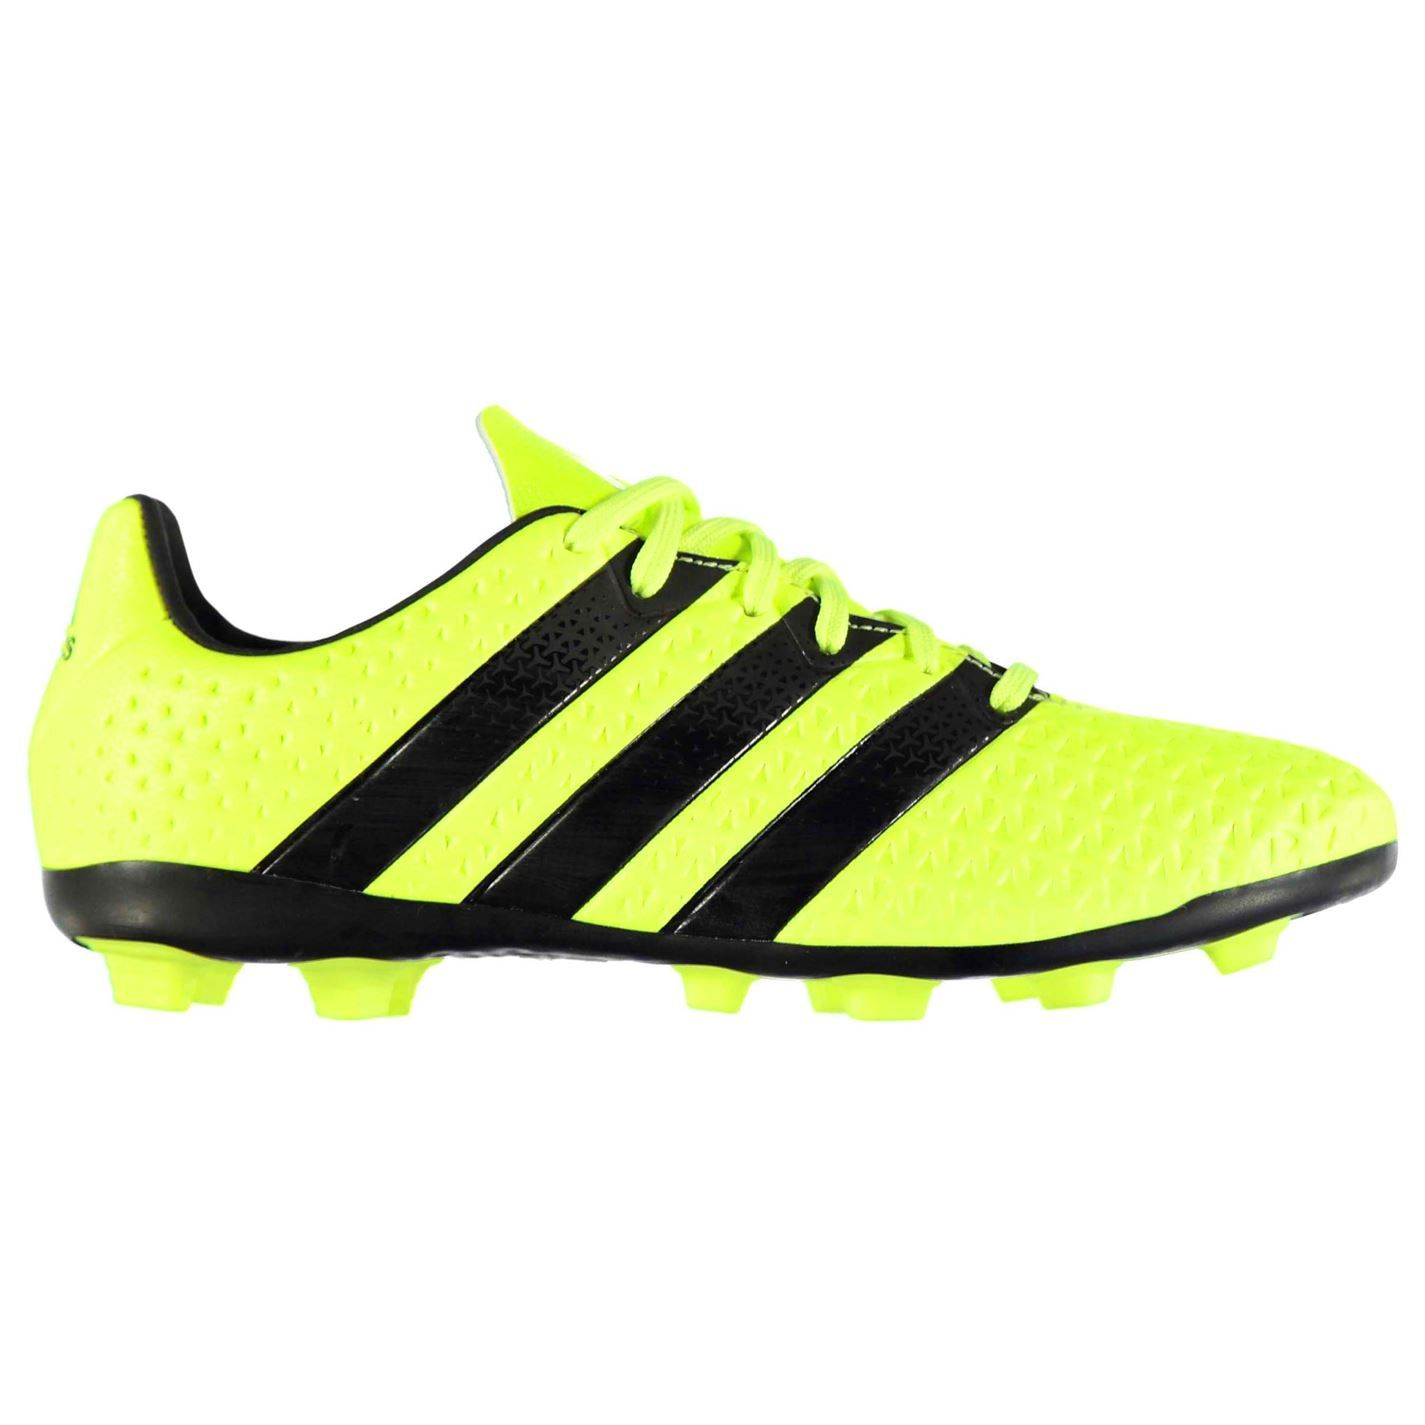 hot sale online 356ca 26a00 Adidas Ace 16.4 FG Football Boots Junior